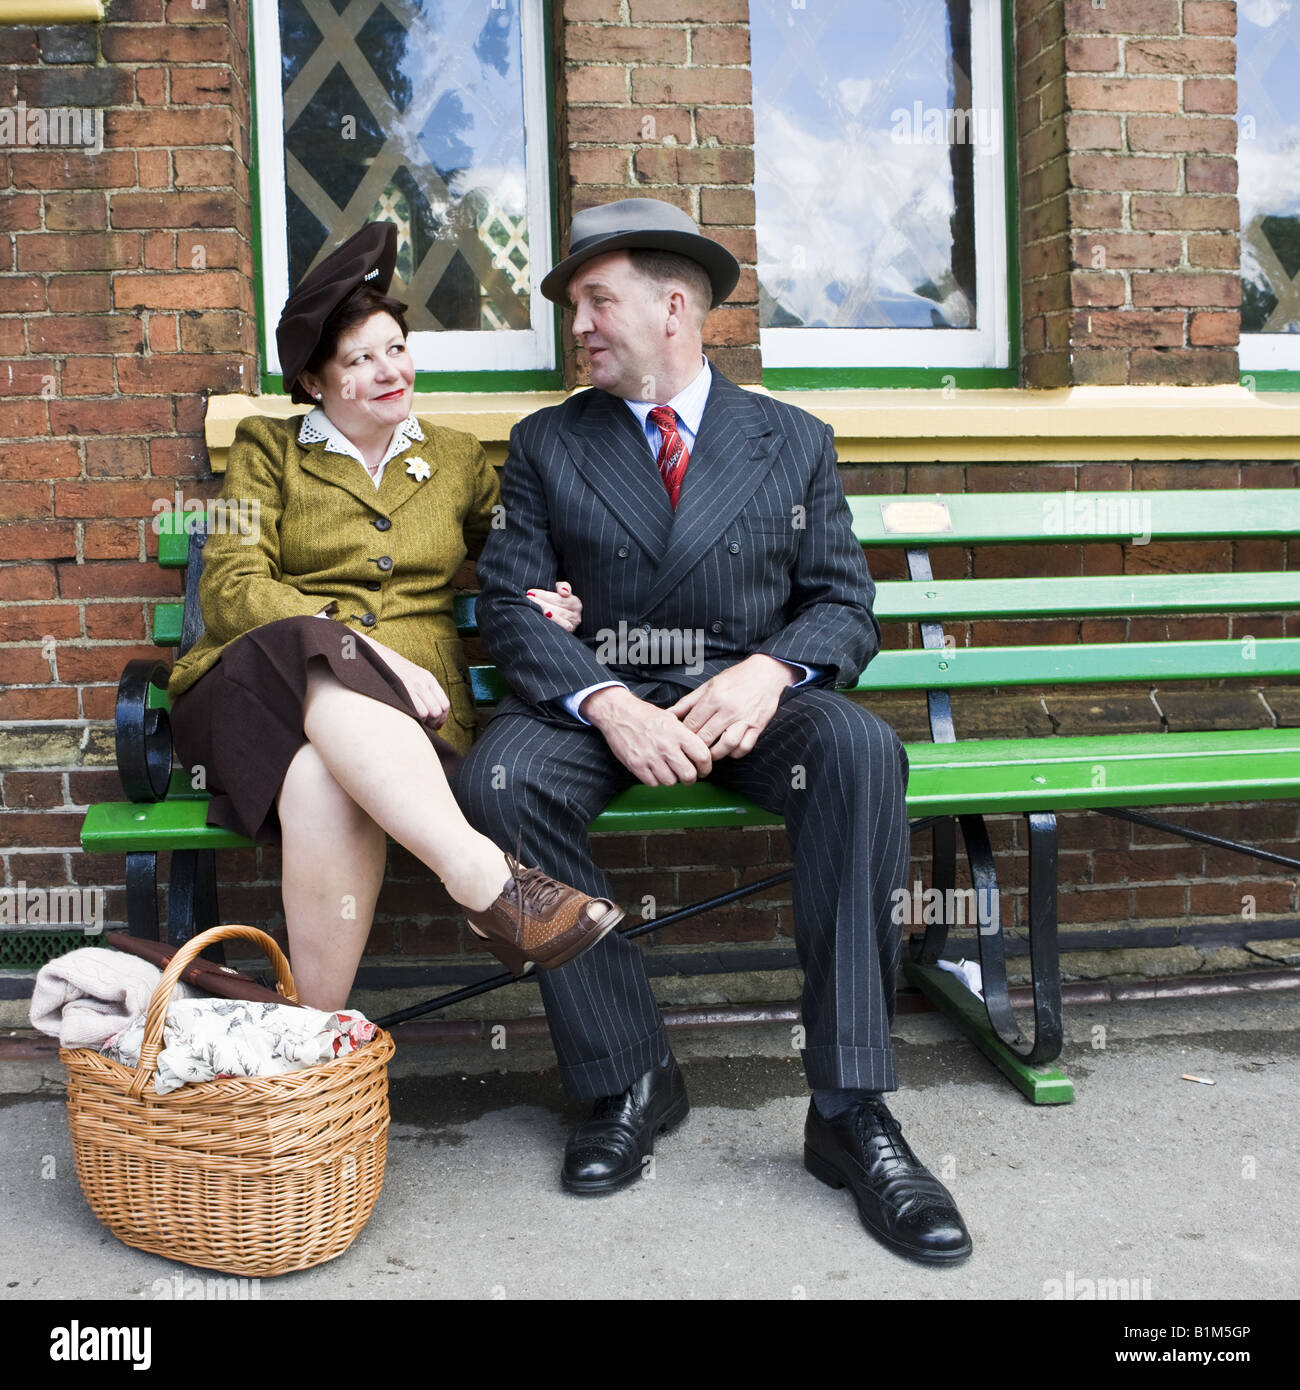 a584f3f282f Couple 1940s Waiting On Railway Platform with Bomb Taped Windows - Stock  Image